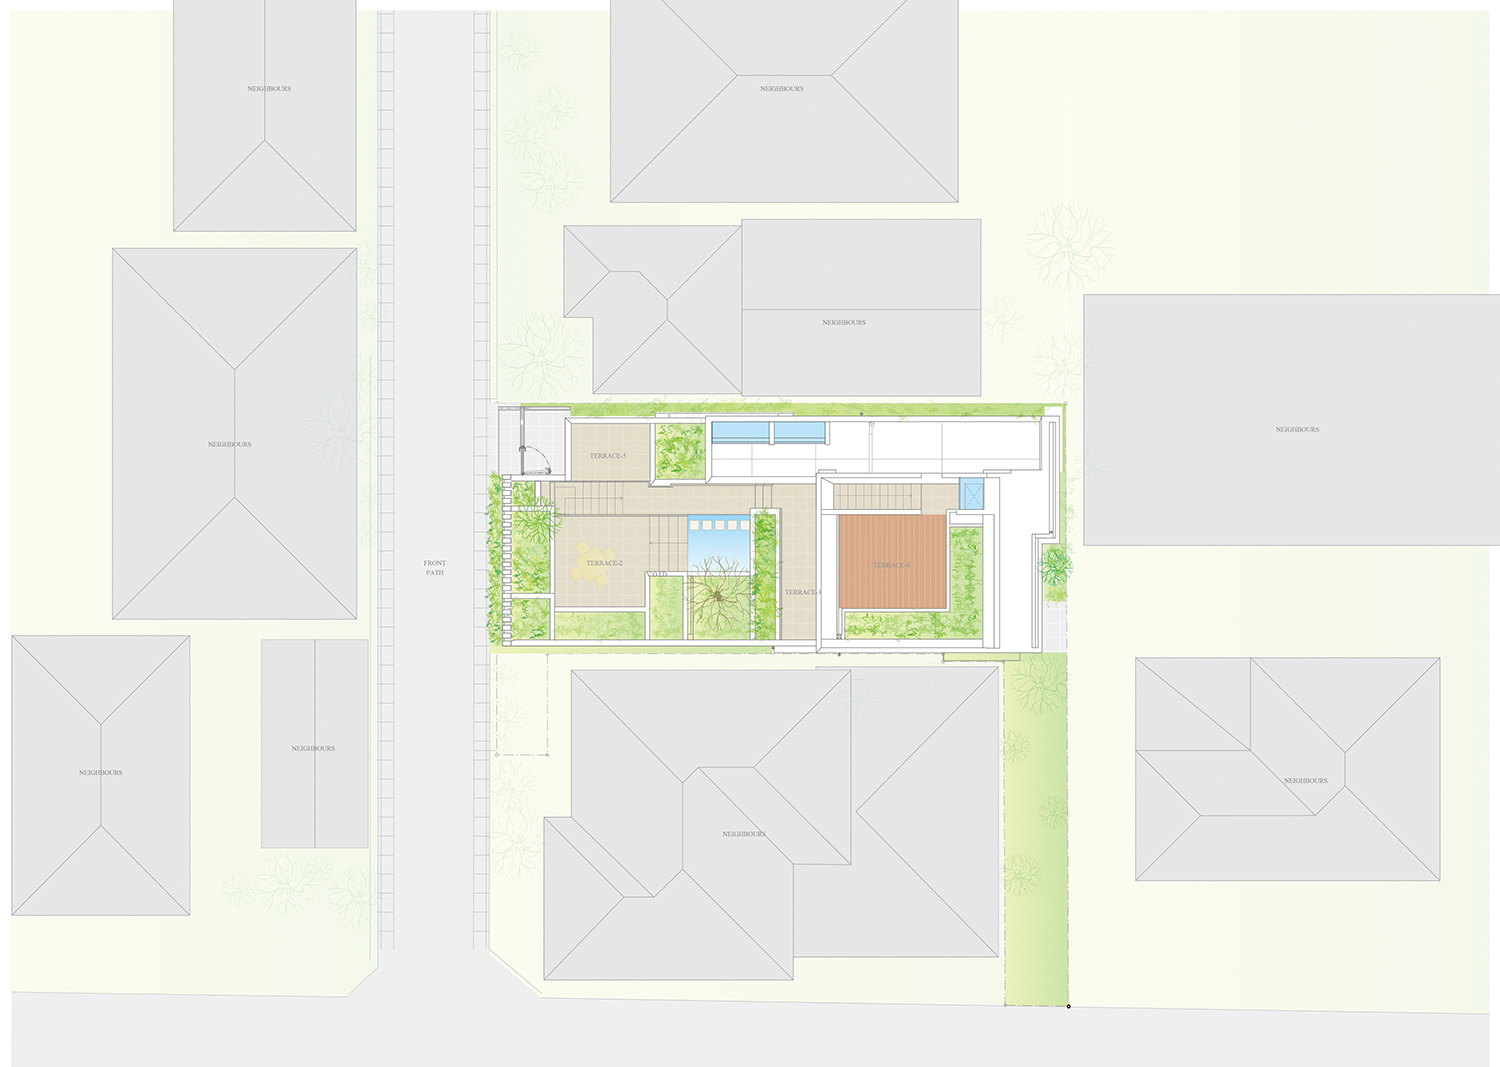 Site.There is a site in a narrow area in a dense residential area surrounding the building. }